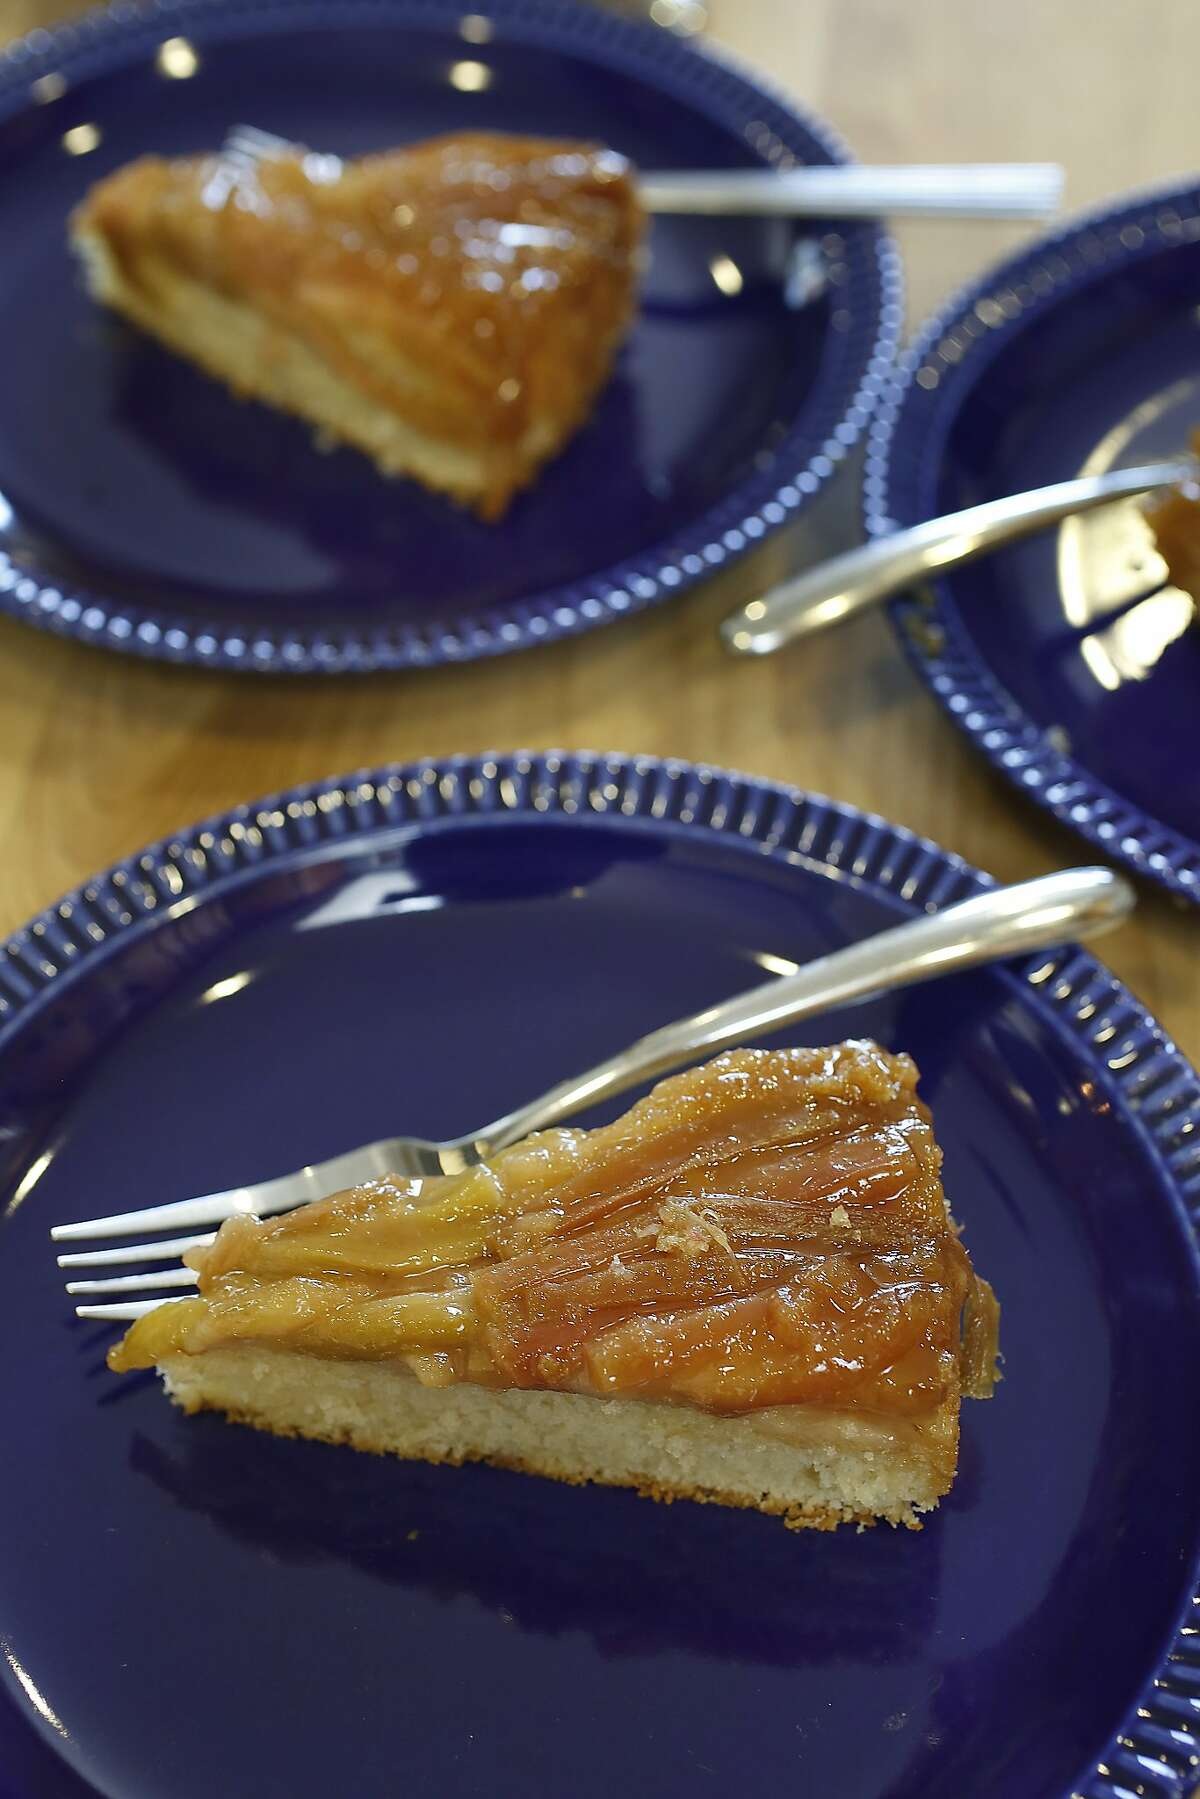 Chef/owner Stacie Pierce of Little Bee Baking made a rhubarb upside-down cake in her home kitchen in San Francisco, California, on Monday, April 13, 2015.